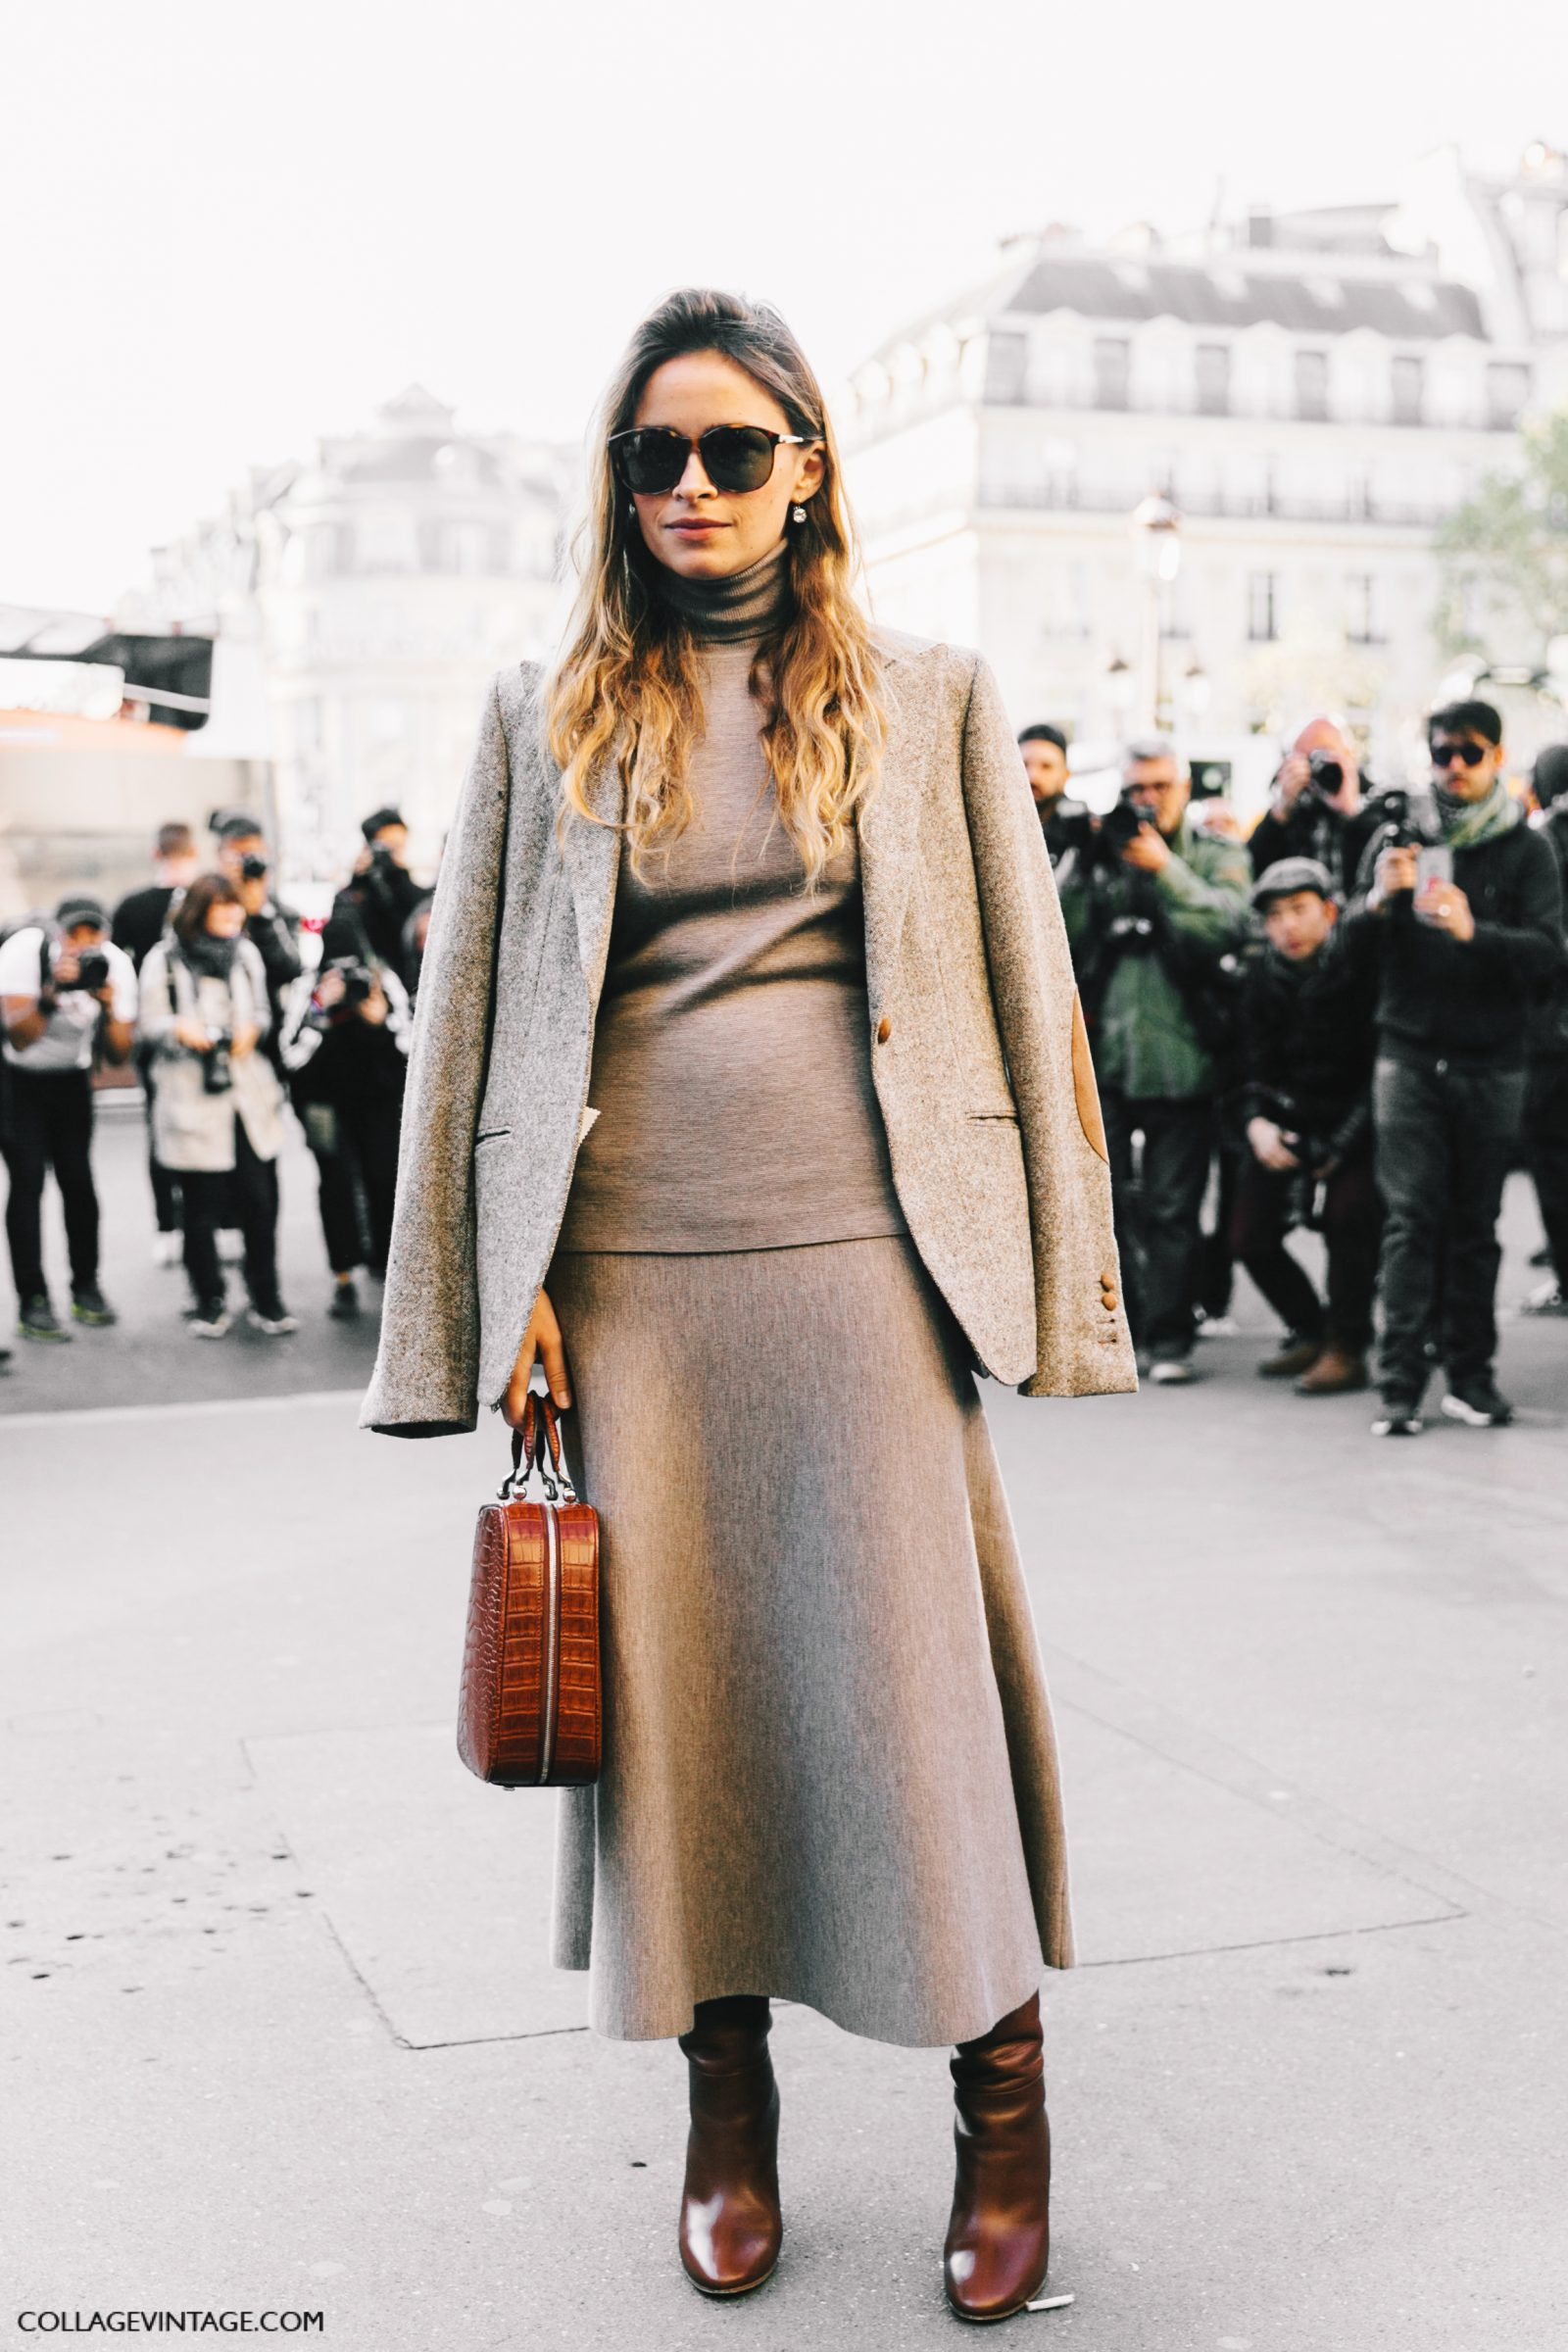 pfw-paris_fashion_week_ss17-street_style-outfits-collage_vintage-olympia_letan-hermes-stella_mccartney-sacai-3